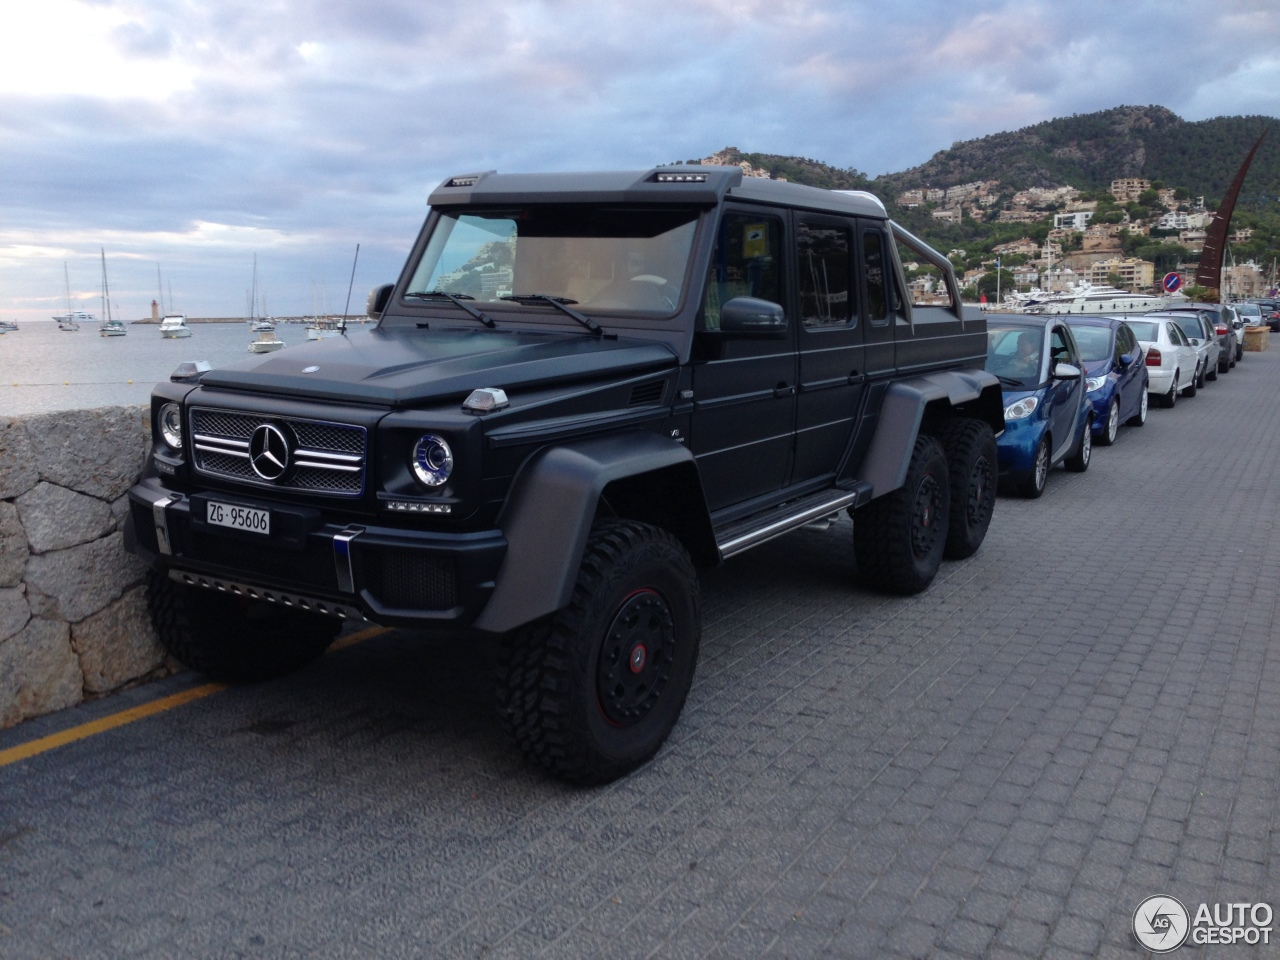 Mercedes-Benz G 63 AMG 6x6 - 17 October 2014 - Autogespot